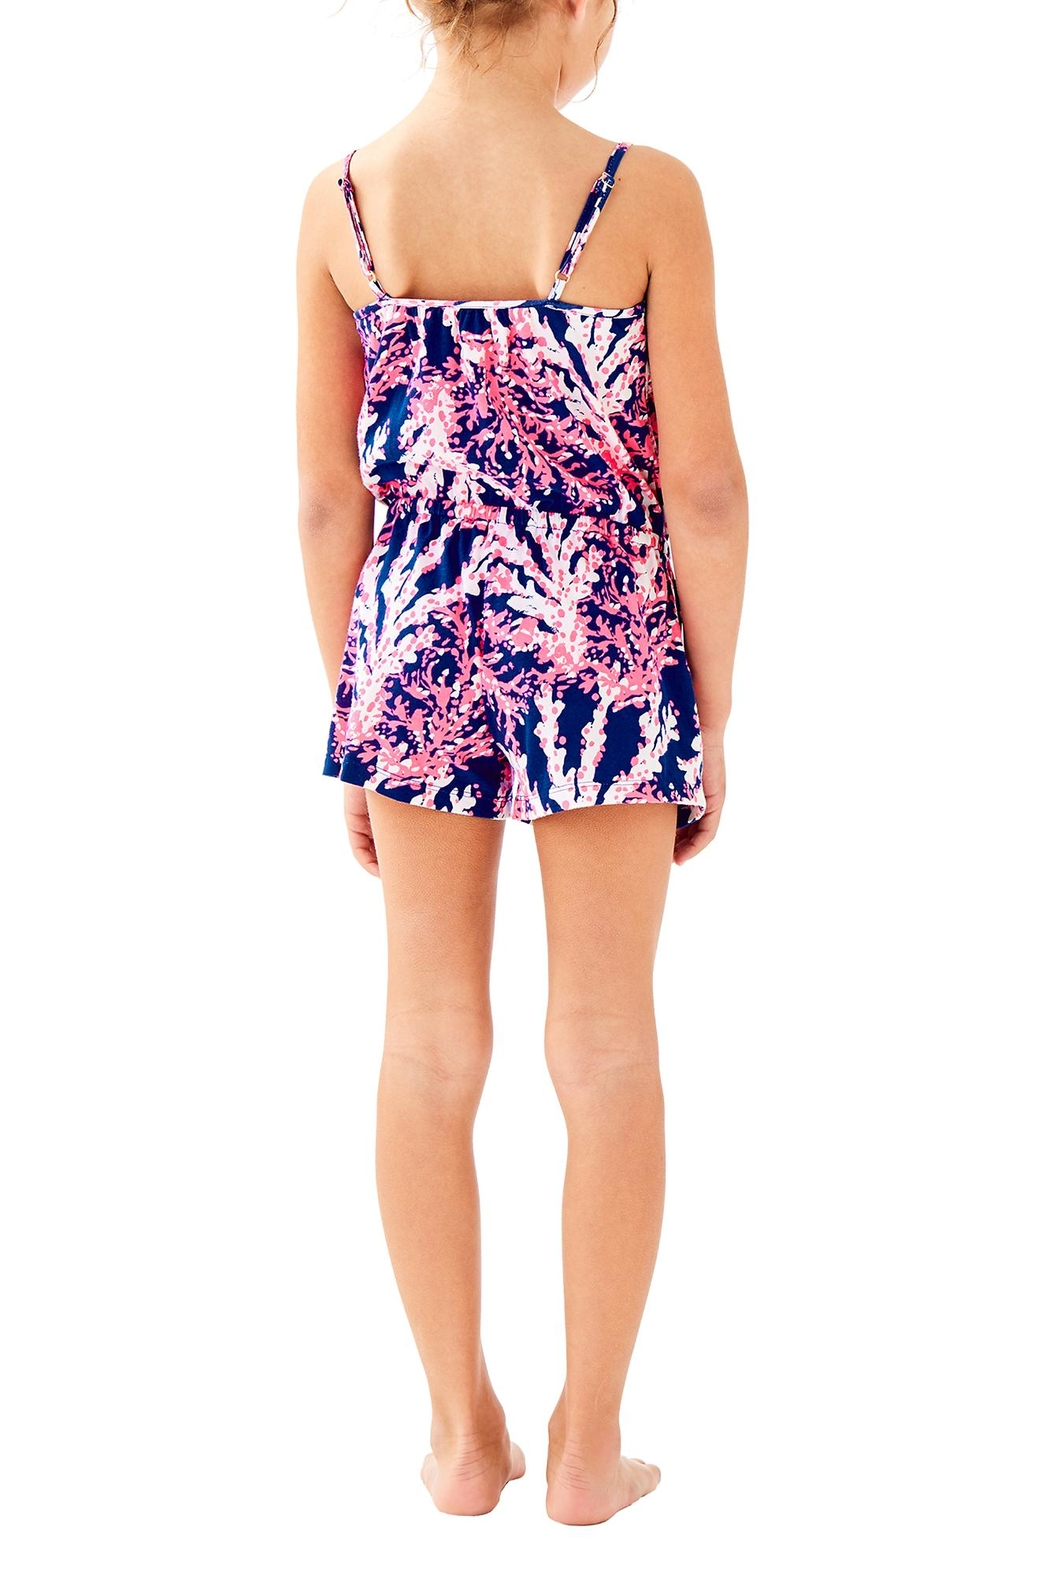 Lilly Pulitzer Girls Aleene Romper - Front Full Image